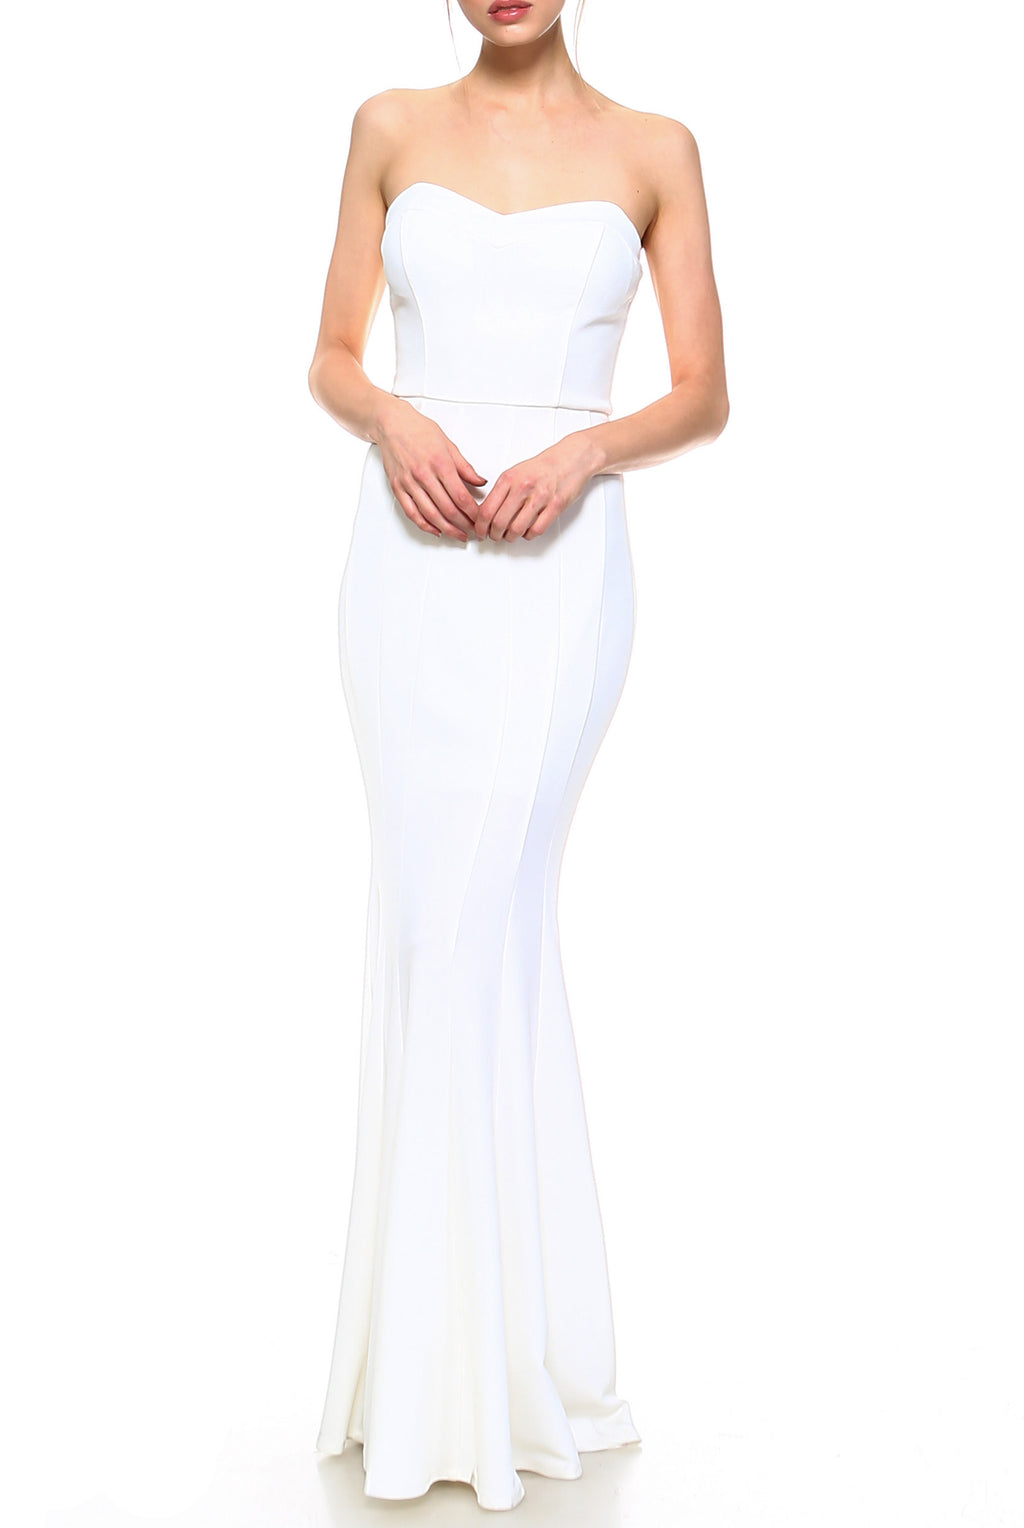 Teeze Me | Strapless Tube Top Trumpet Skirt Long Dress  | Ivory - Teeze Me Juniors Apparel